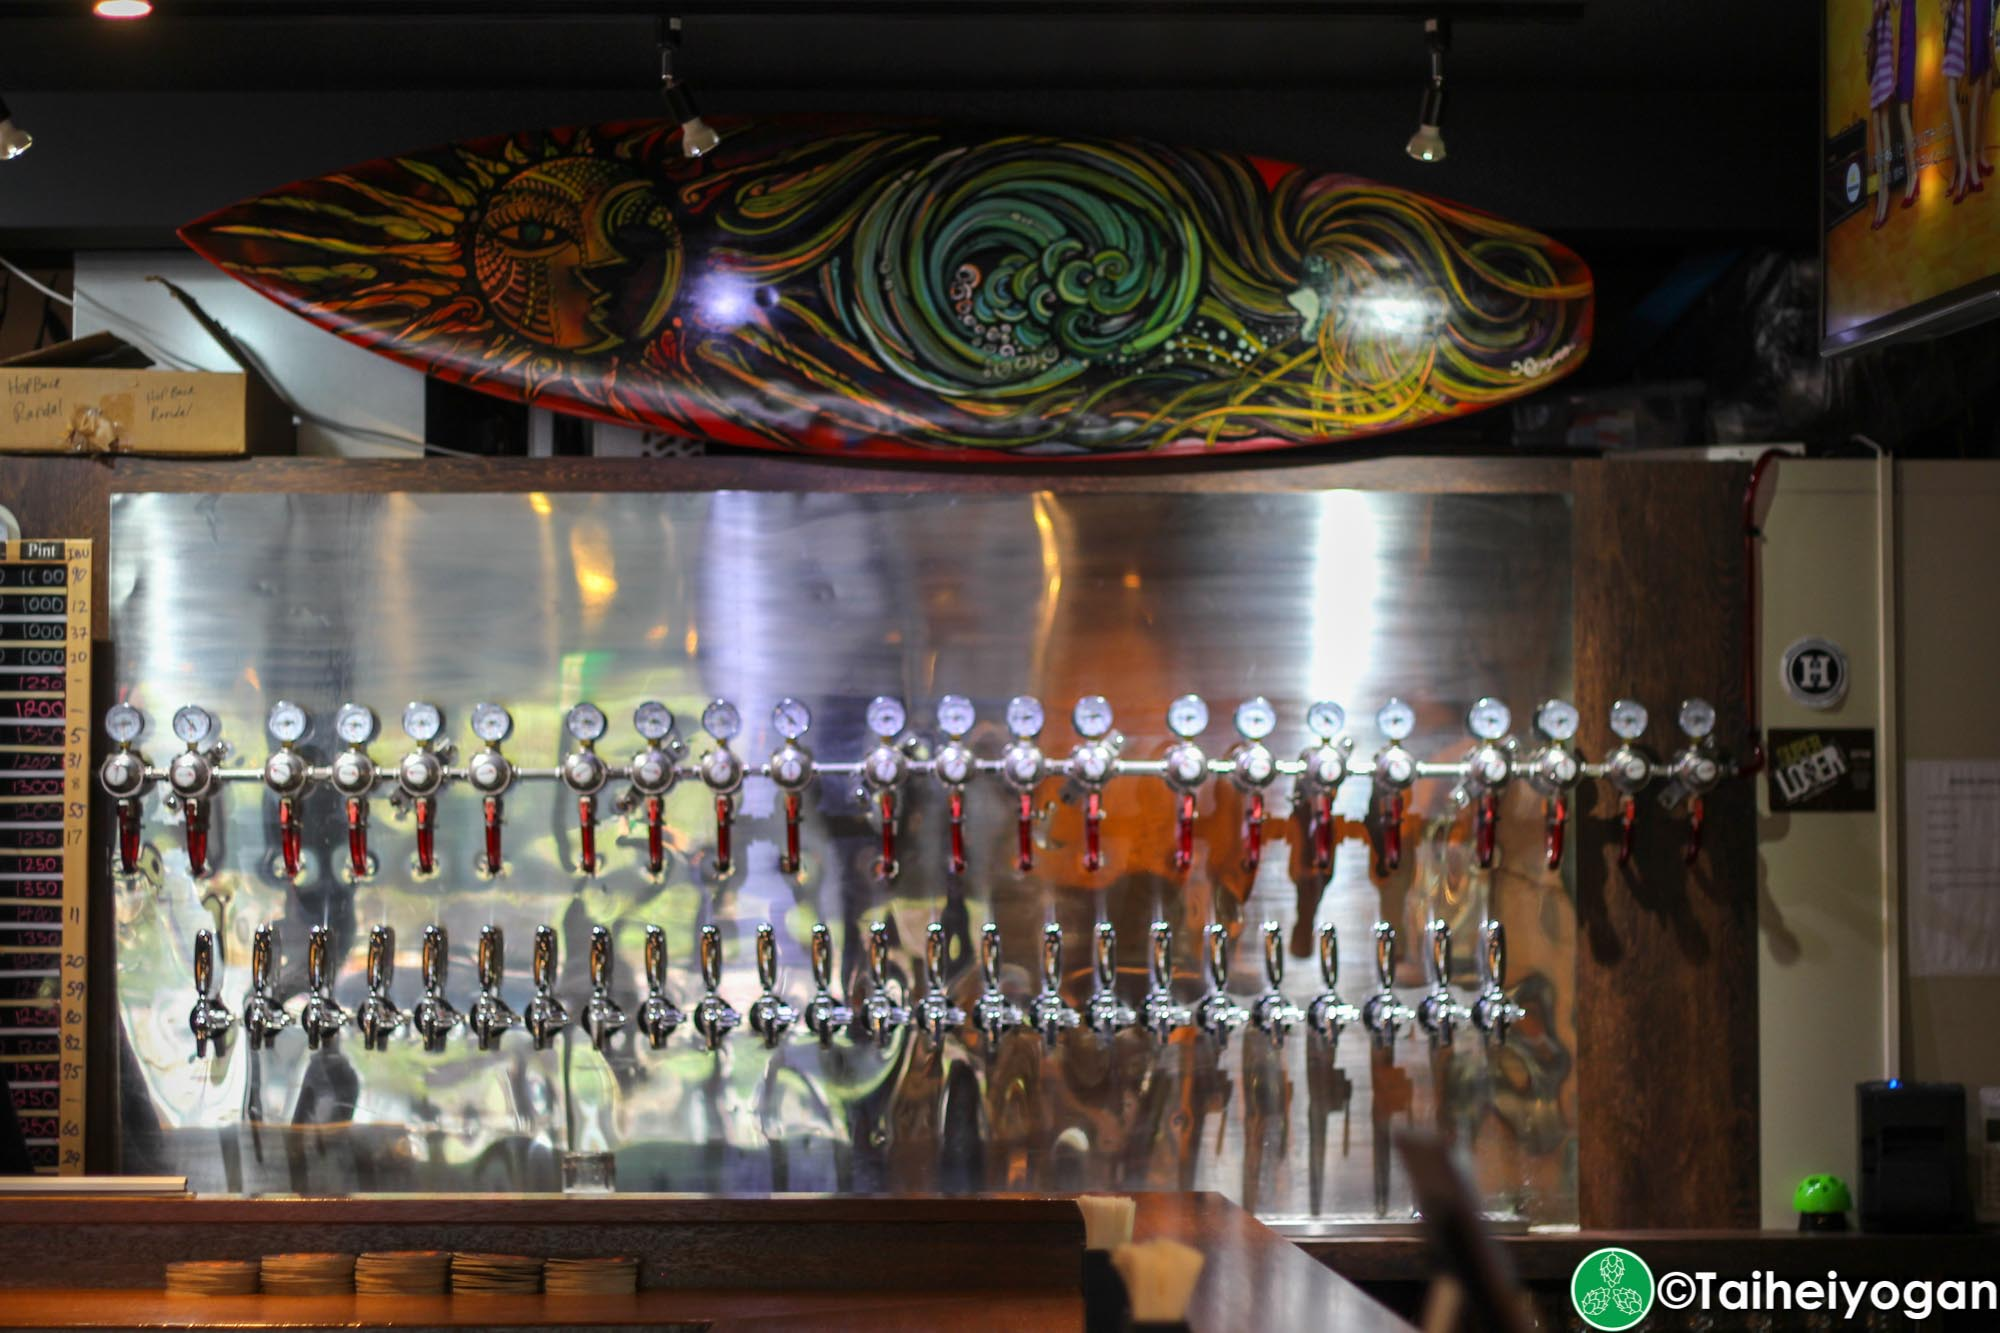 Okinawa Brewing Company - Interior - Beer Taps